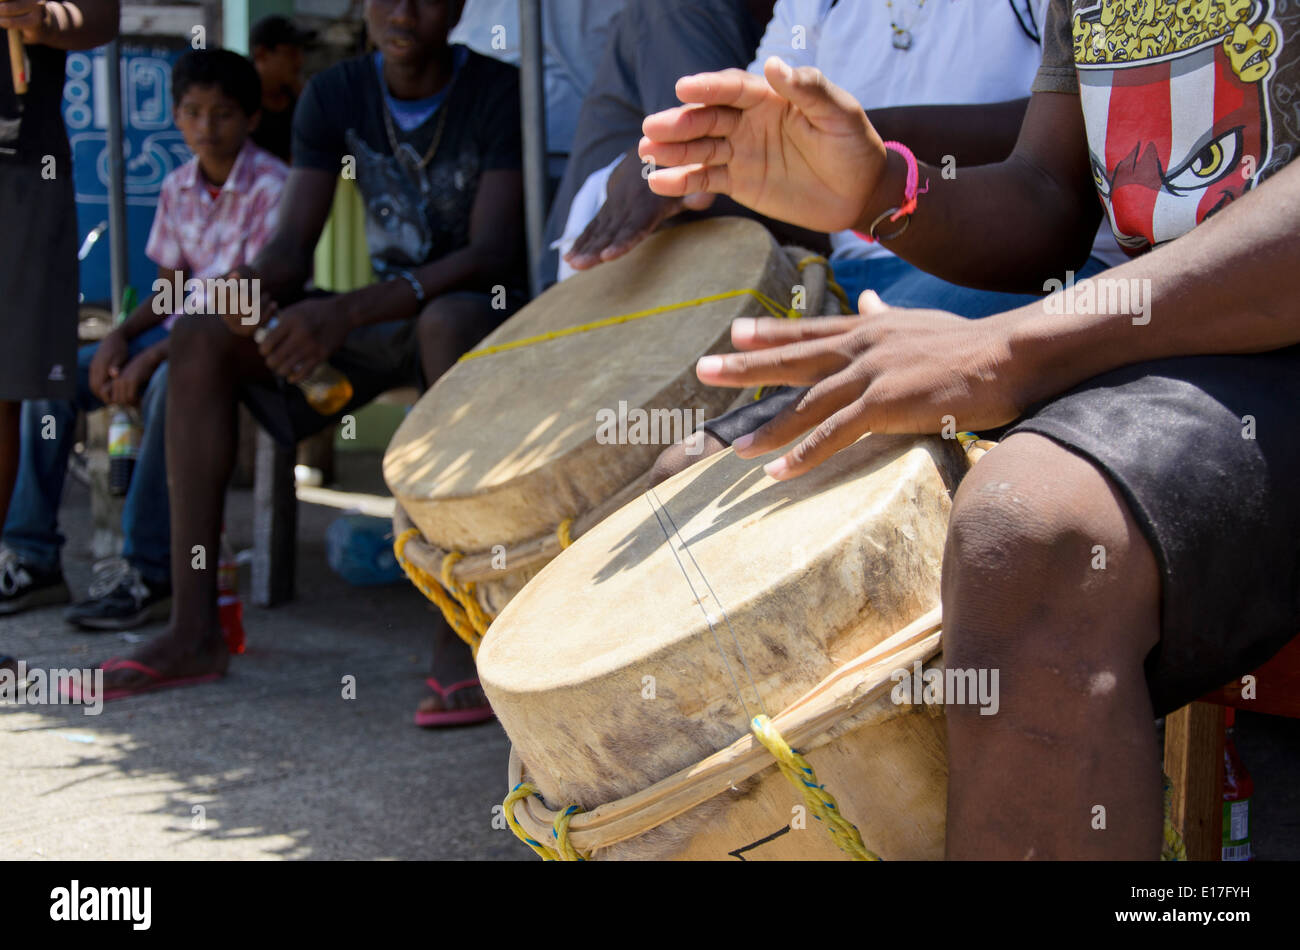 2014 Toledo District Chocolate Festival in Belize - Stock Image